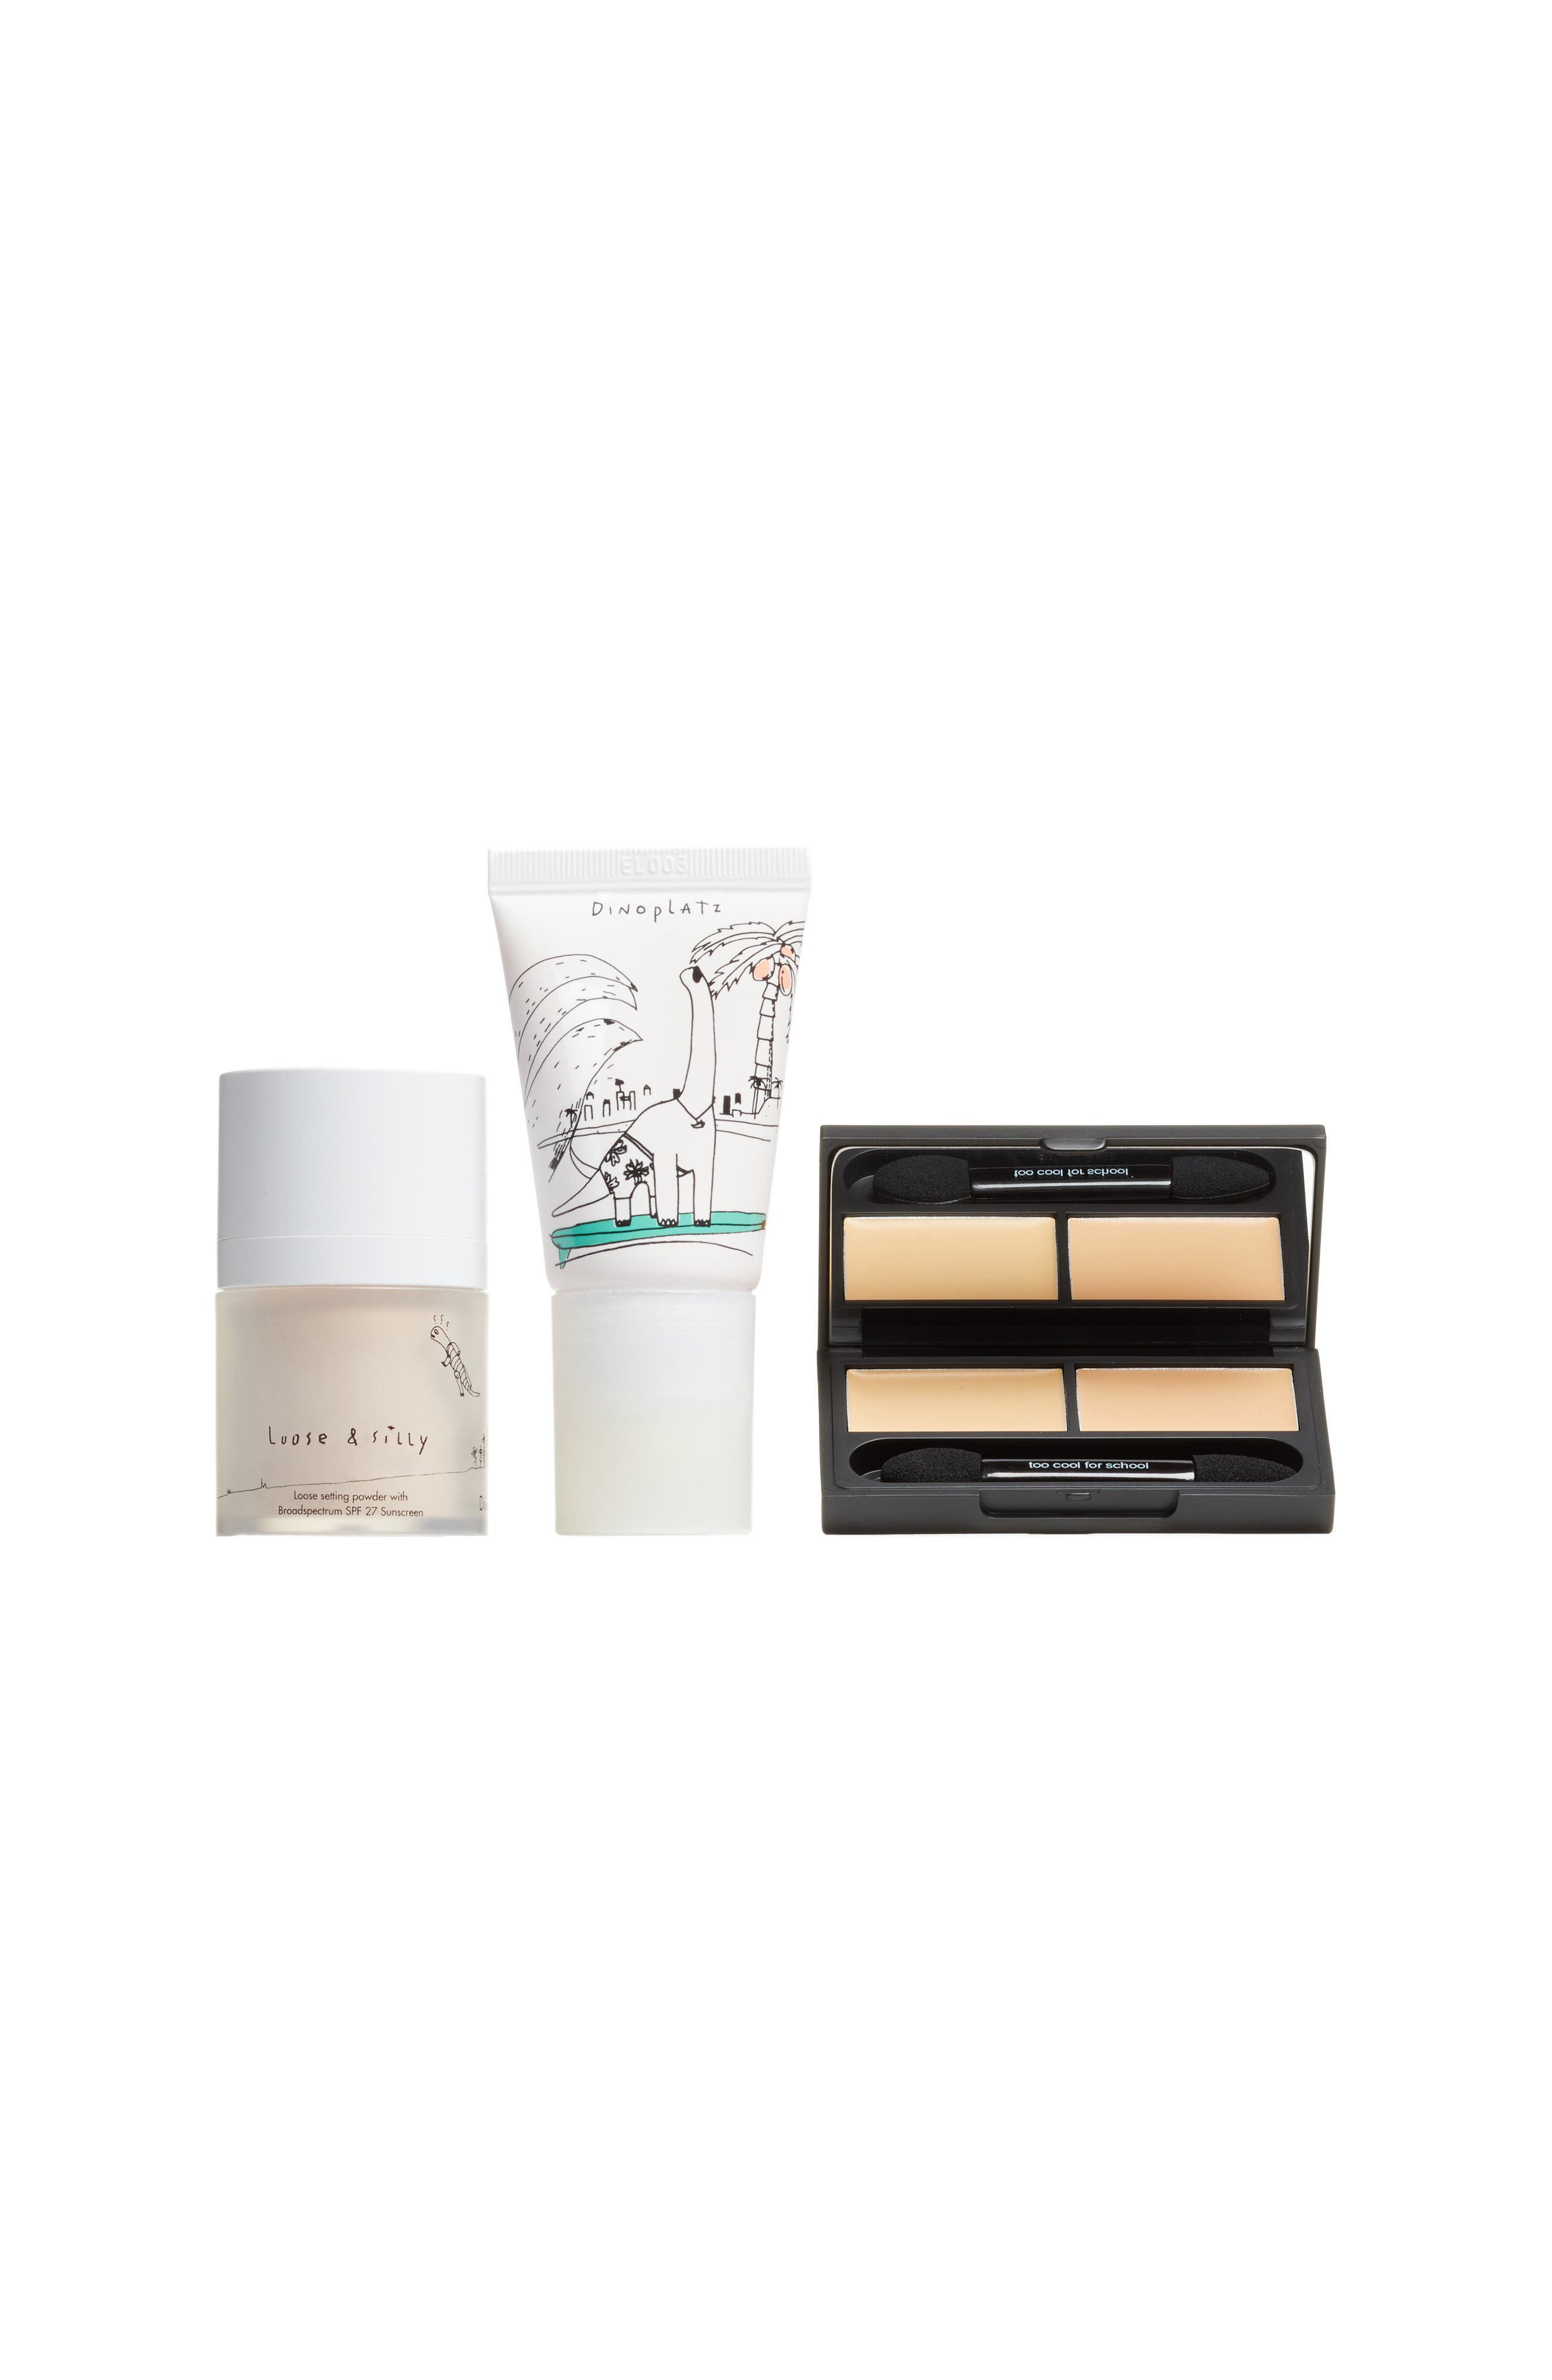 Too Cool For School Flawless Look Dinoplatz Blush, Concealer & Powder Set